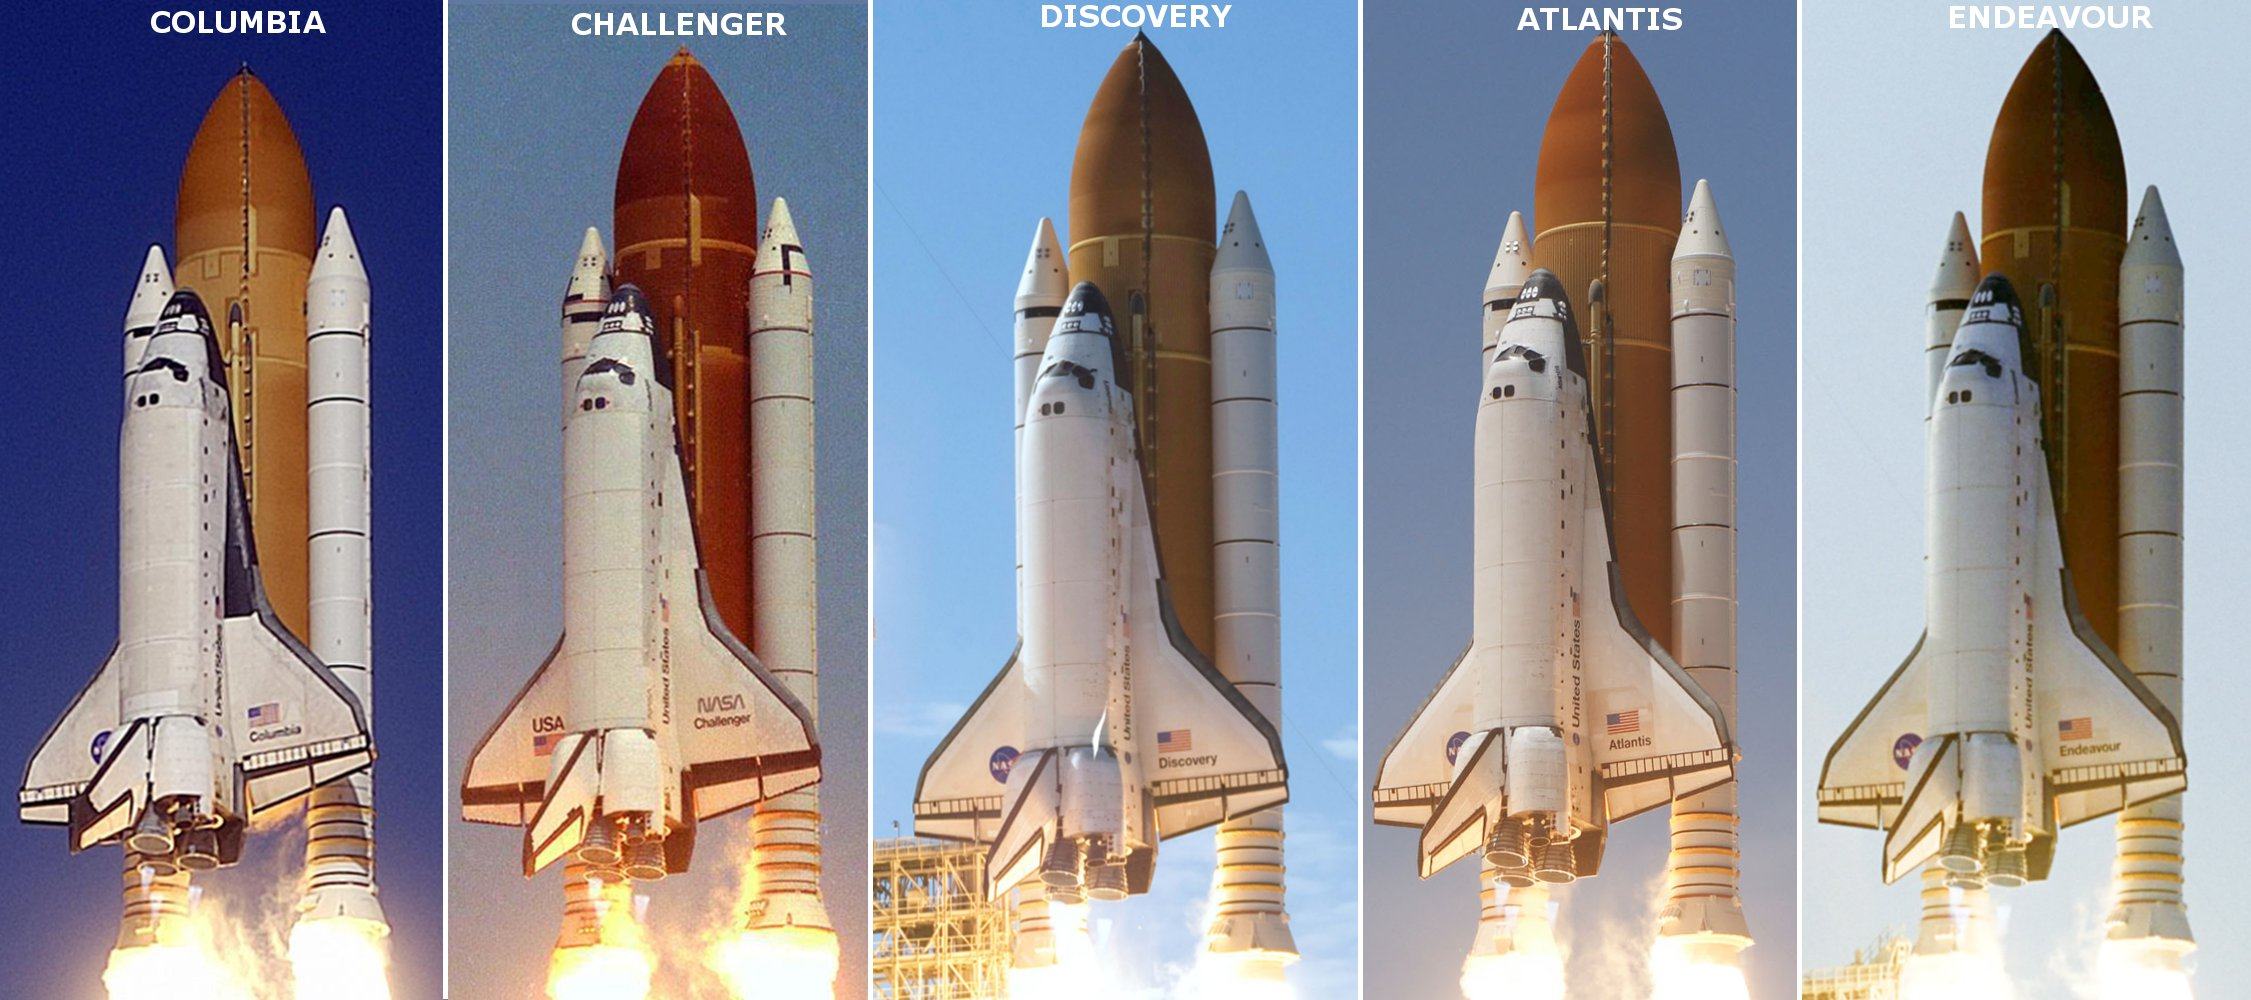 File:Shuttle profiles.jpg - Wikimedia Commons